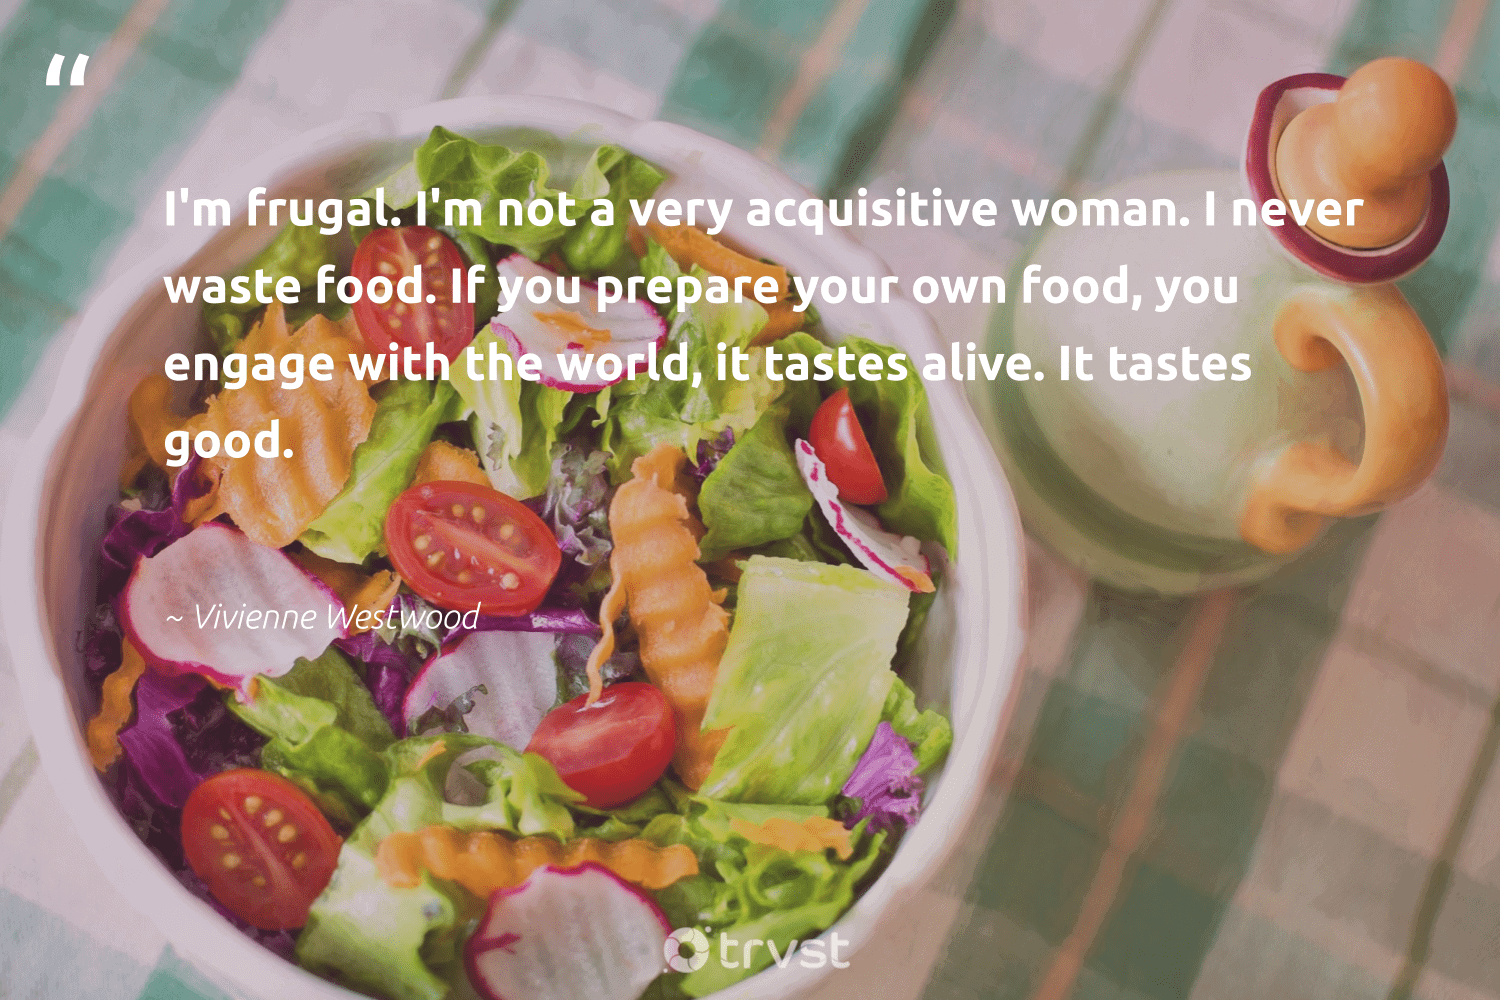 """""""I'm frugal. I'm not a very acquisitive woman. I never waste food. If you prepare your own food, you engage with the world, it tastes alive. It tastes good.""""  - Vivienne Westwood #trvst #quotes #waste #wastefood #food #endhunger #greenliving #changeahabit #thinkgreen #fighthunger #gogreen #trash"""